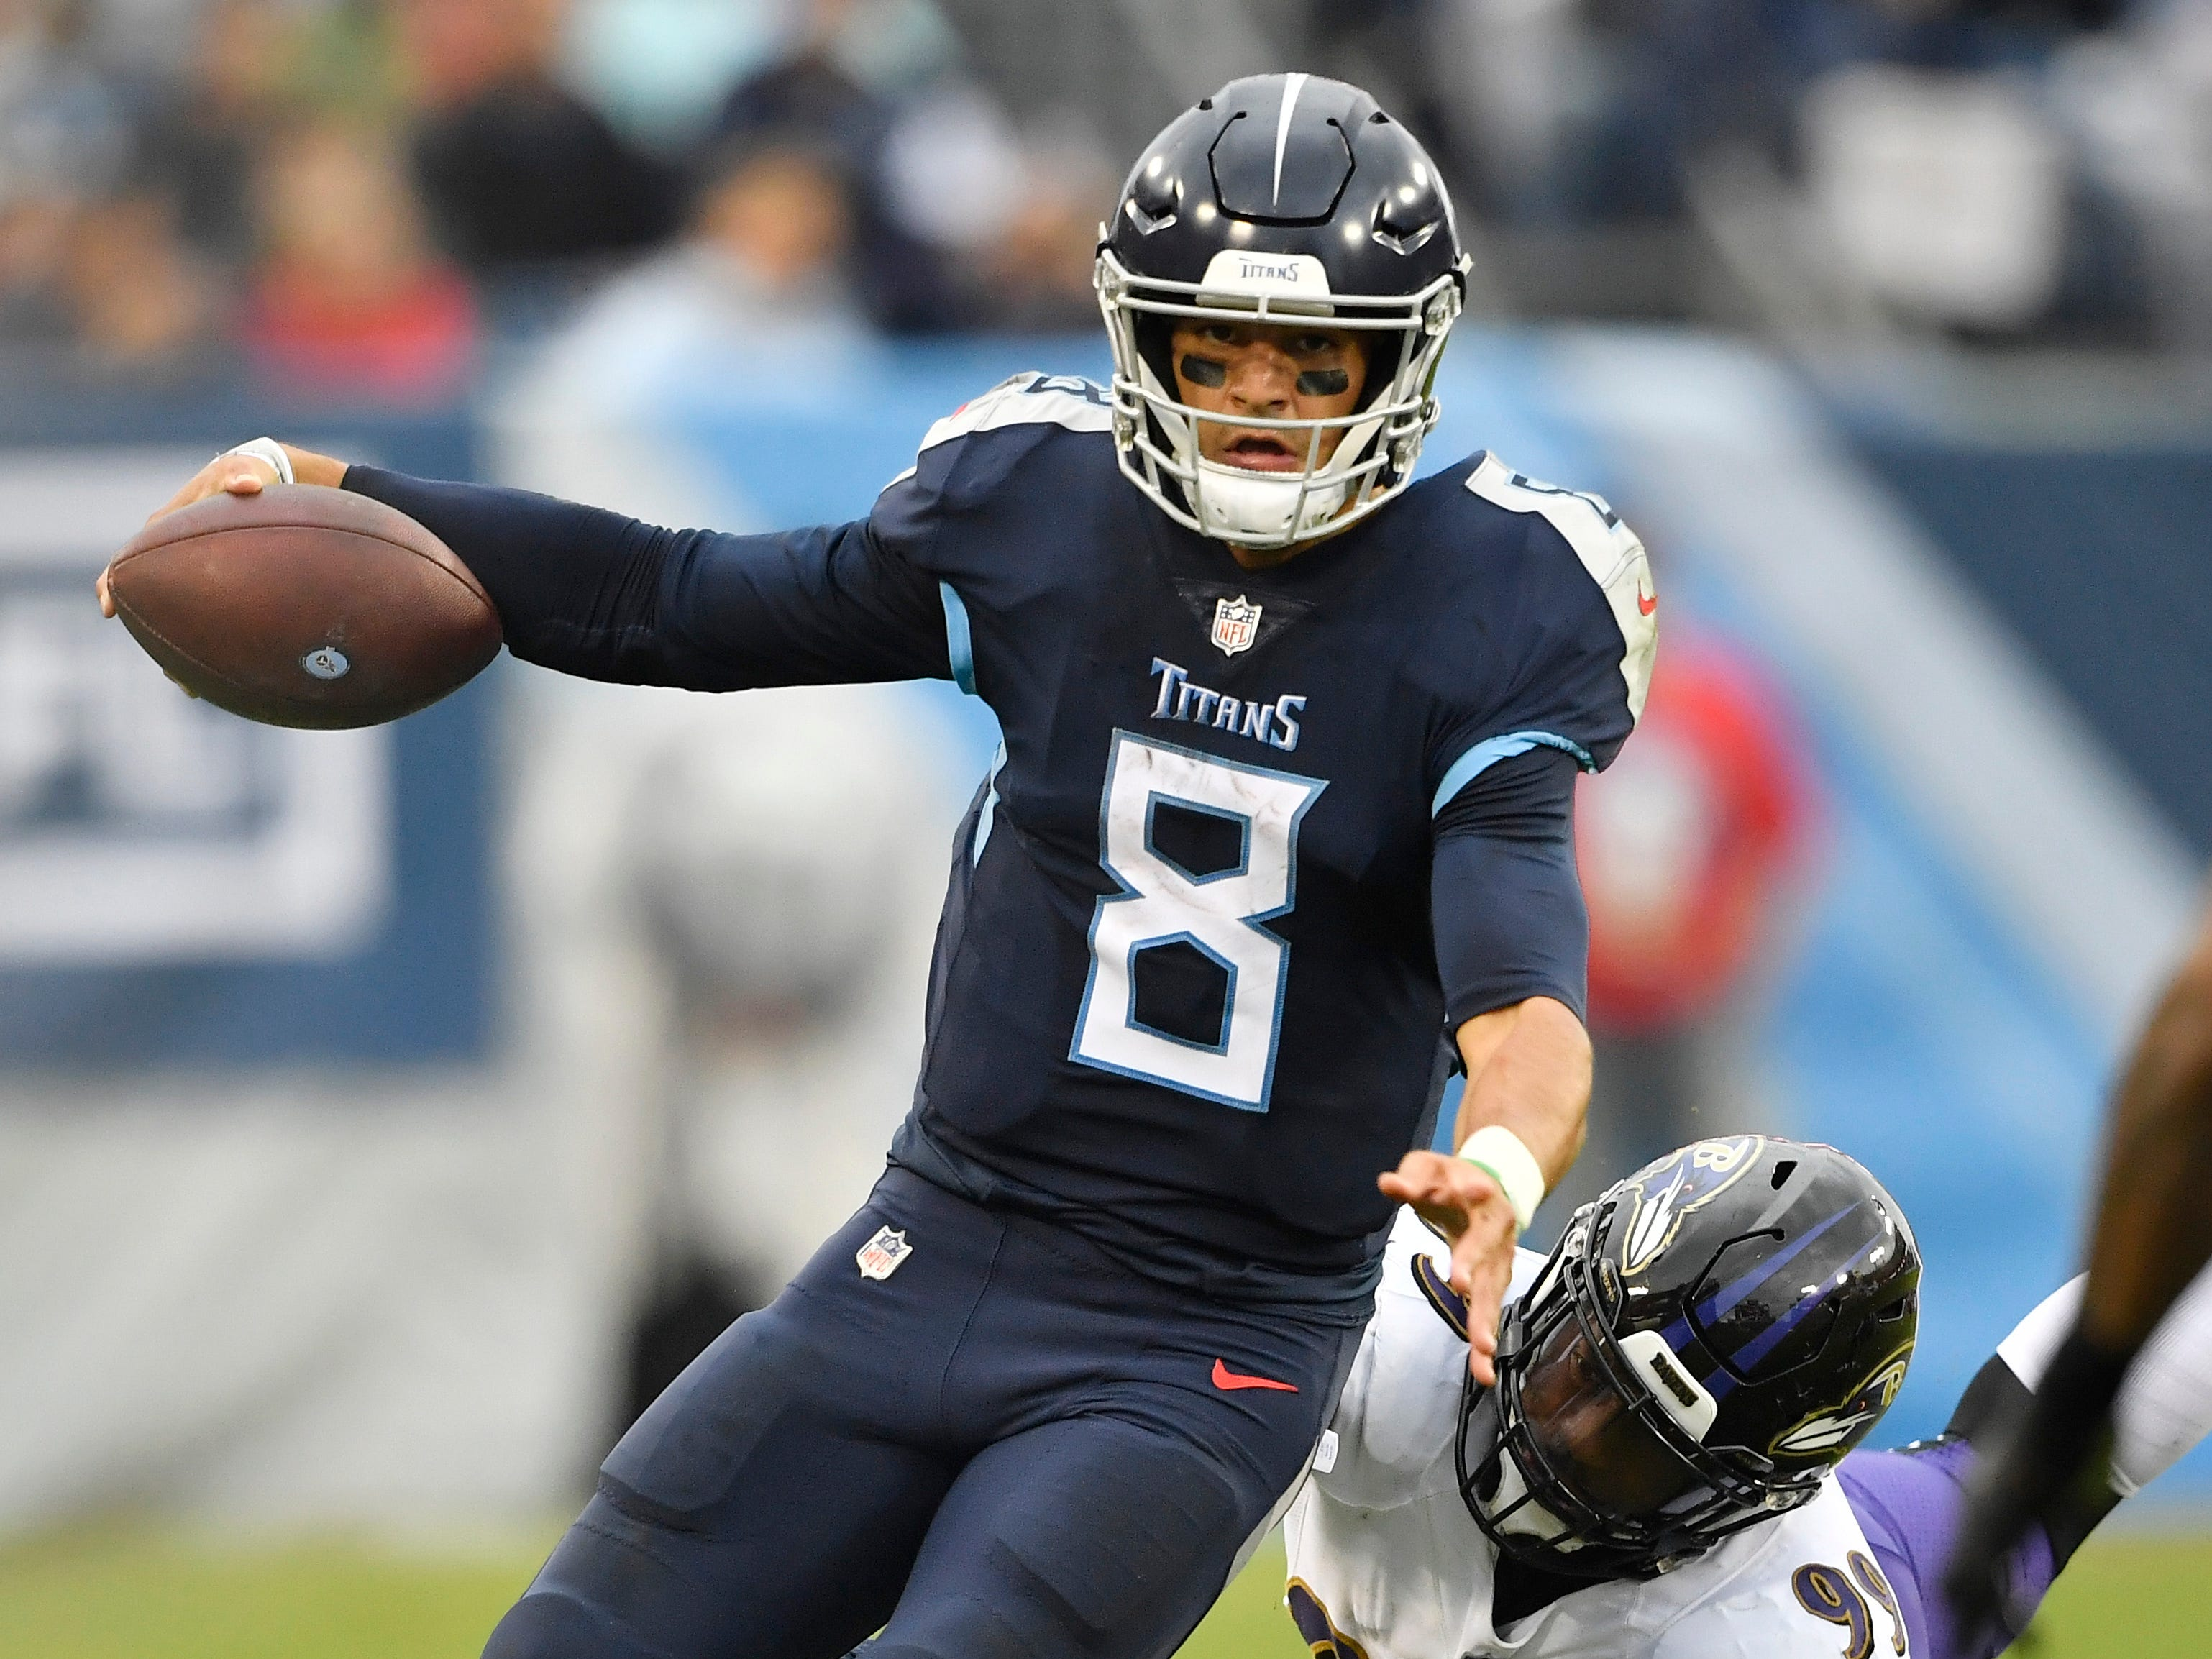 Titans quarterback Marcus Mariota (8) scrambles out of the pocket in the second quarter at Nissan Stadium Sunday, Oct. 14, 2018, in Nashville, Tenn.